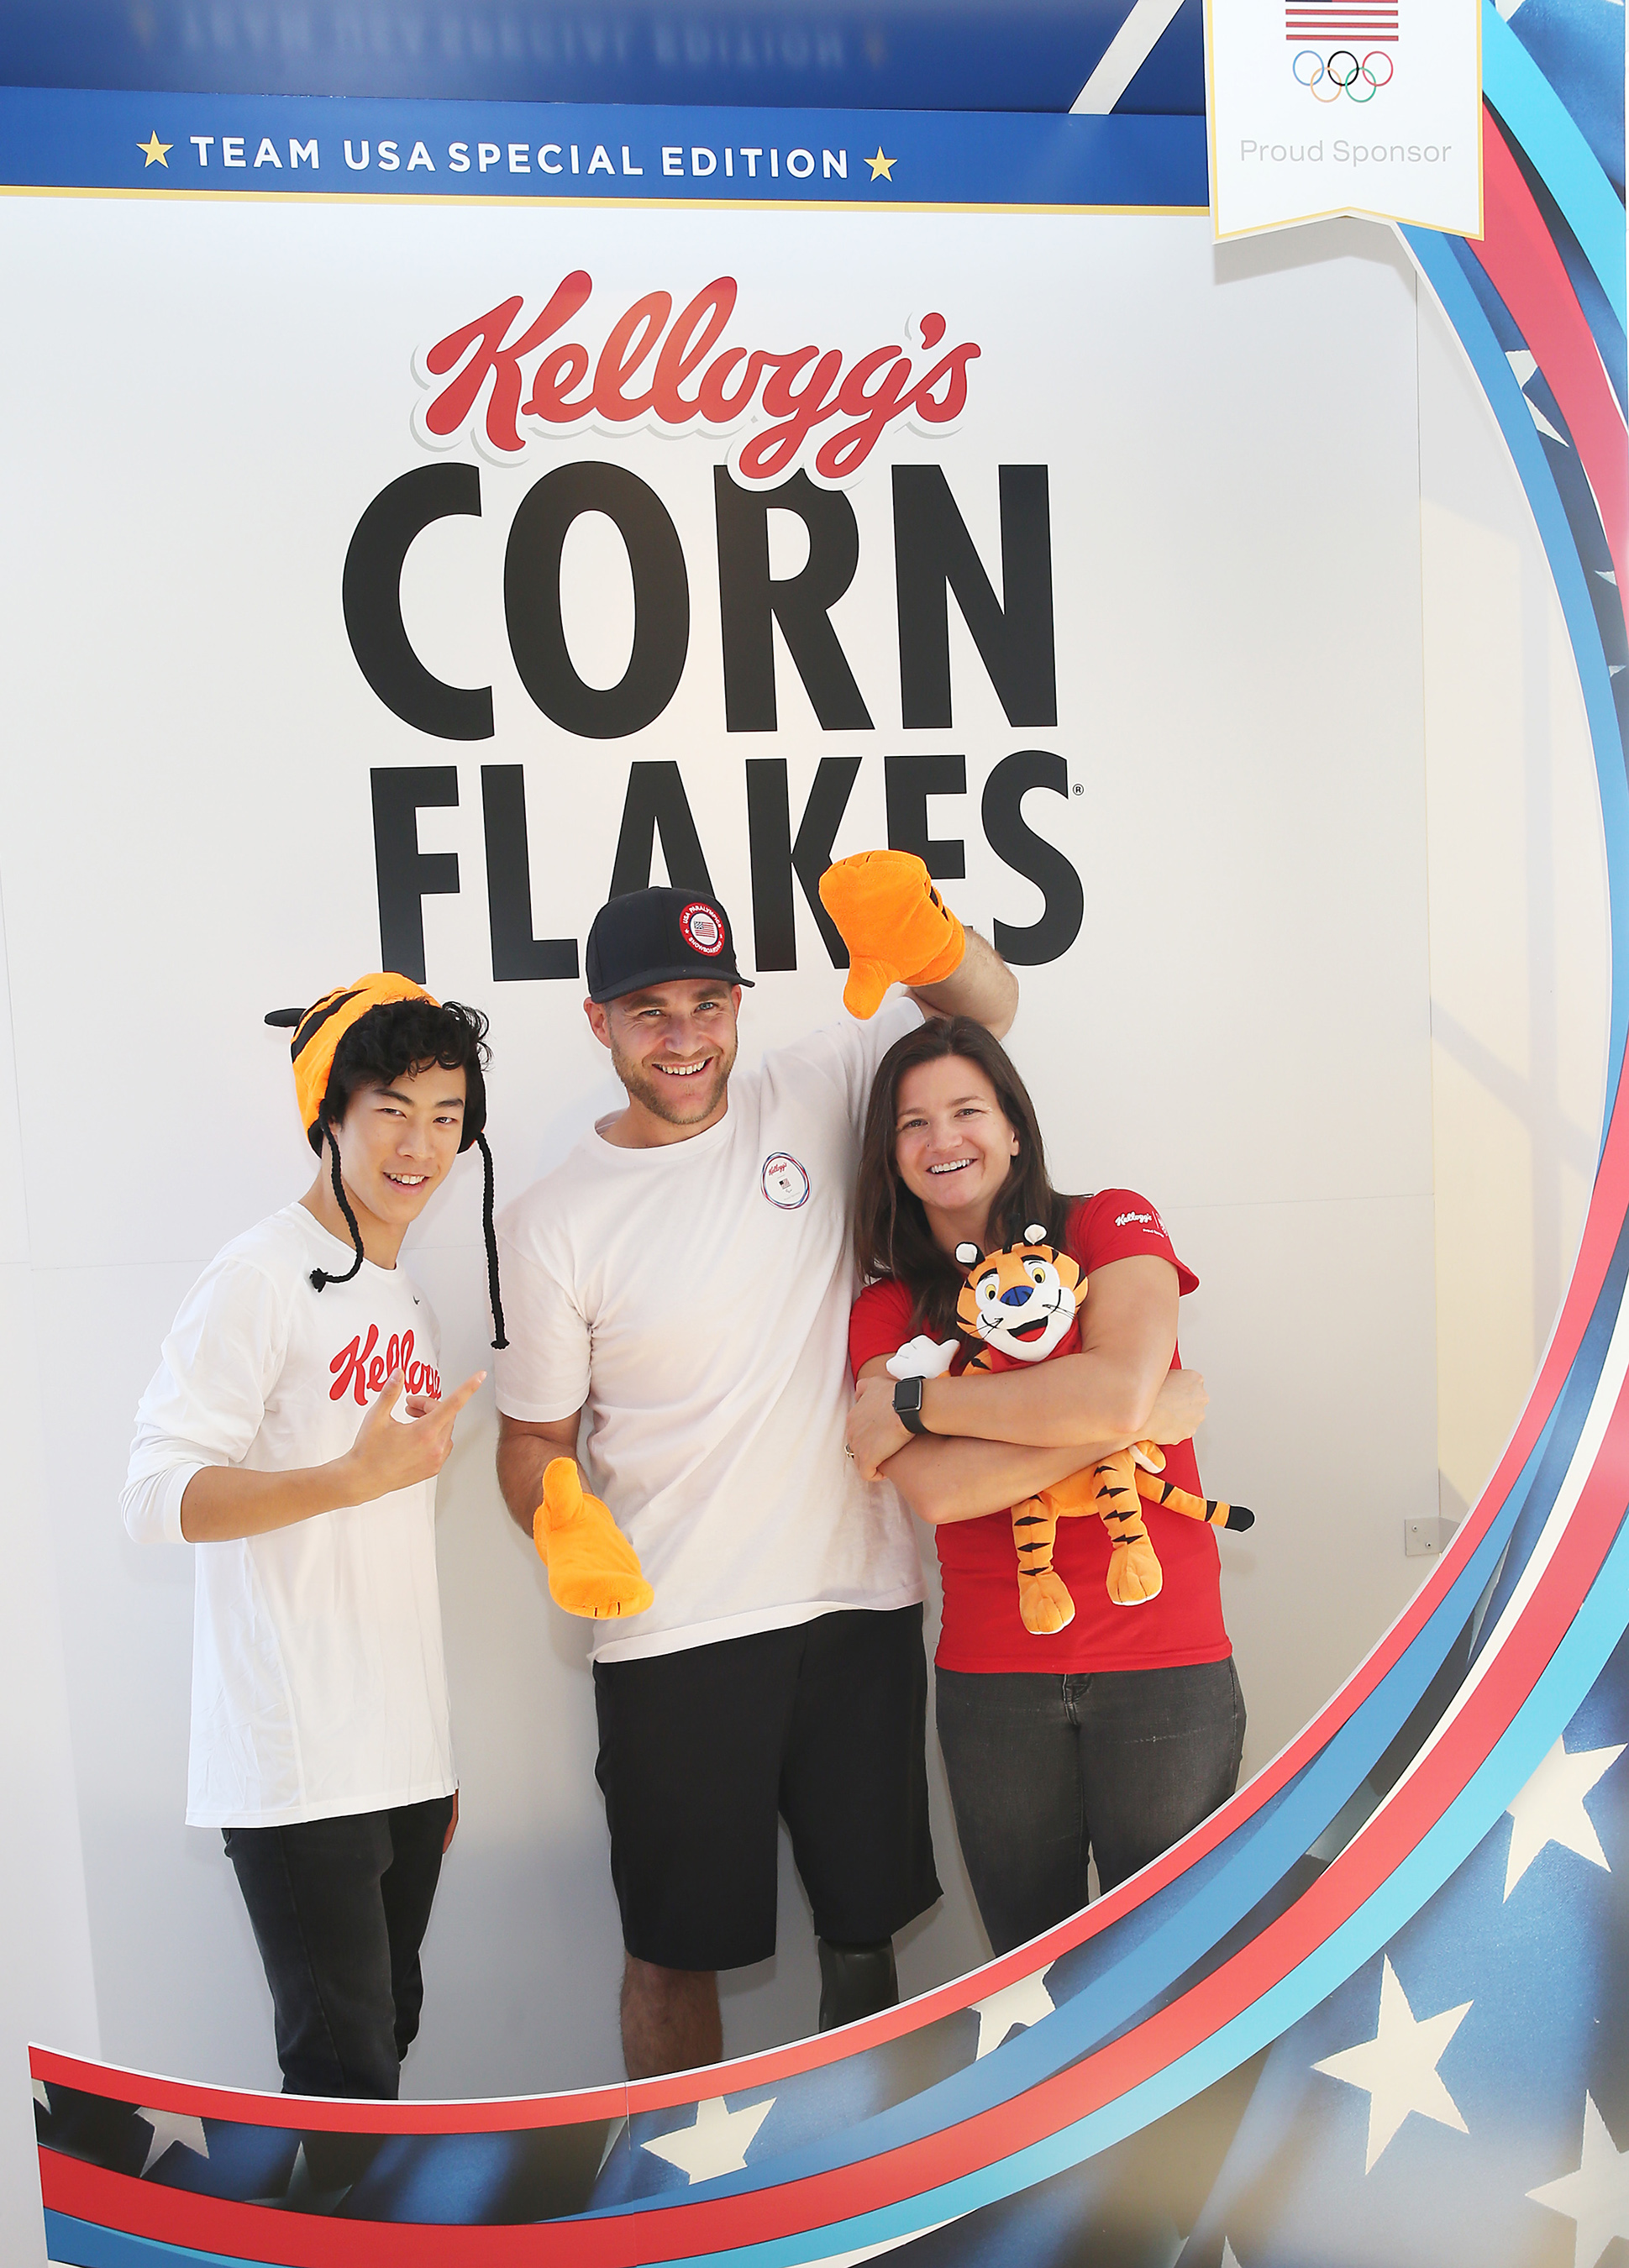 Newly introduced Team Kellogg's athletes and Team USA hopefuls Nathan Chen, figure skating, from left, Mike Schultz, Paralympic snowboarding, and Kelly Clark, snowboarding, strike a pose in the Corn Flakes photo booth.